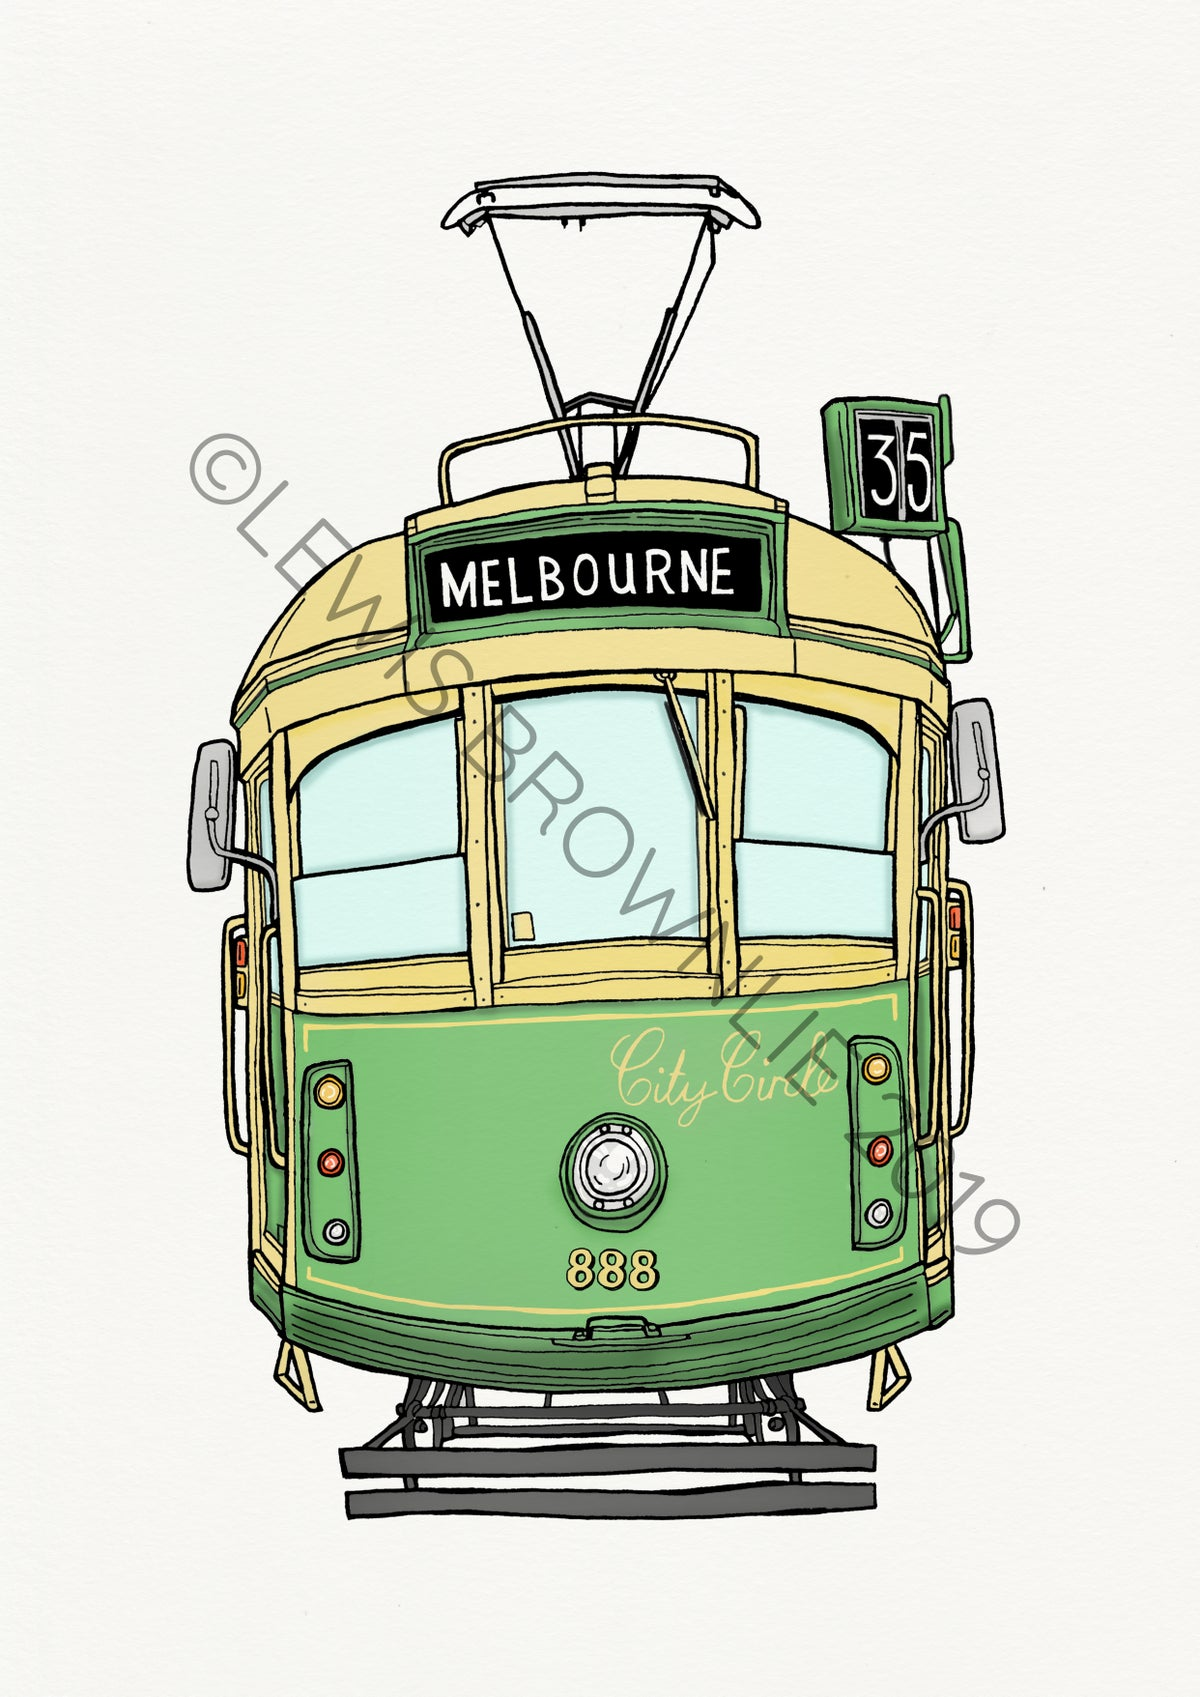 Image of City Circle Tram Melbourne - Limited Edition Giclee Colour Print